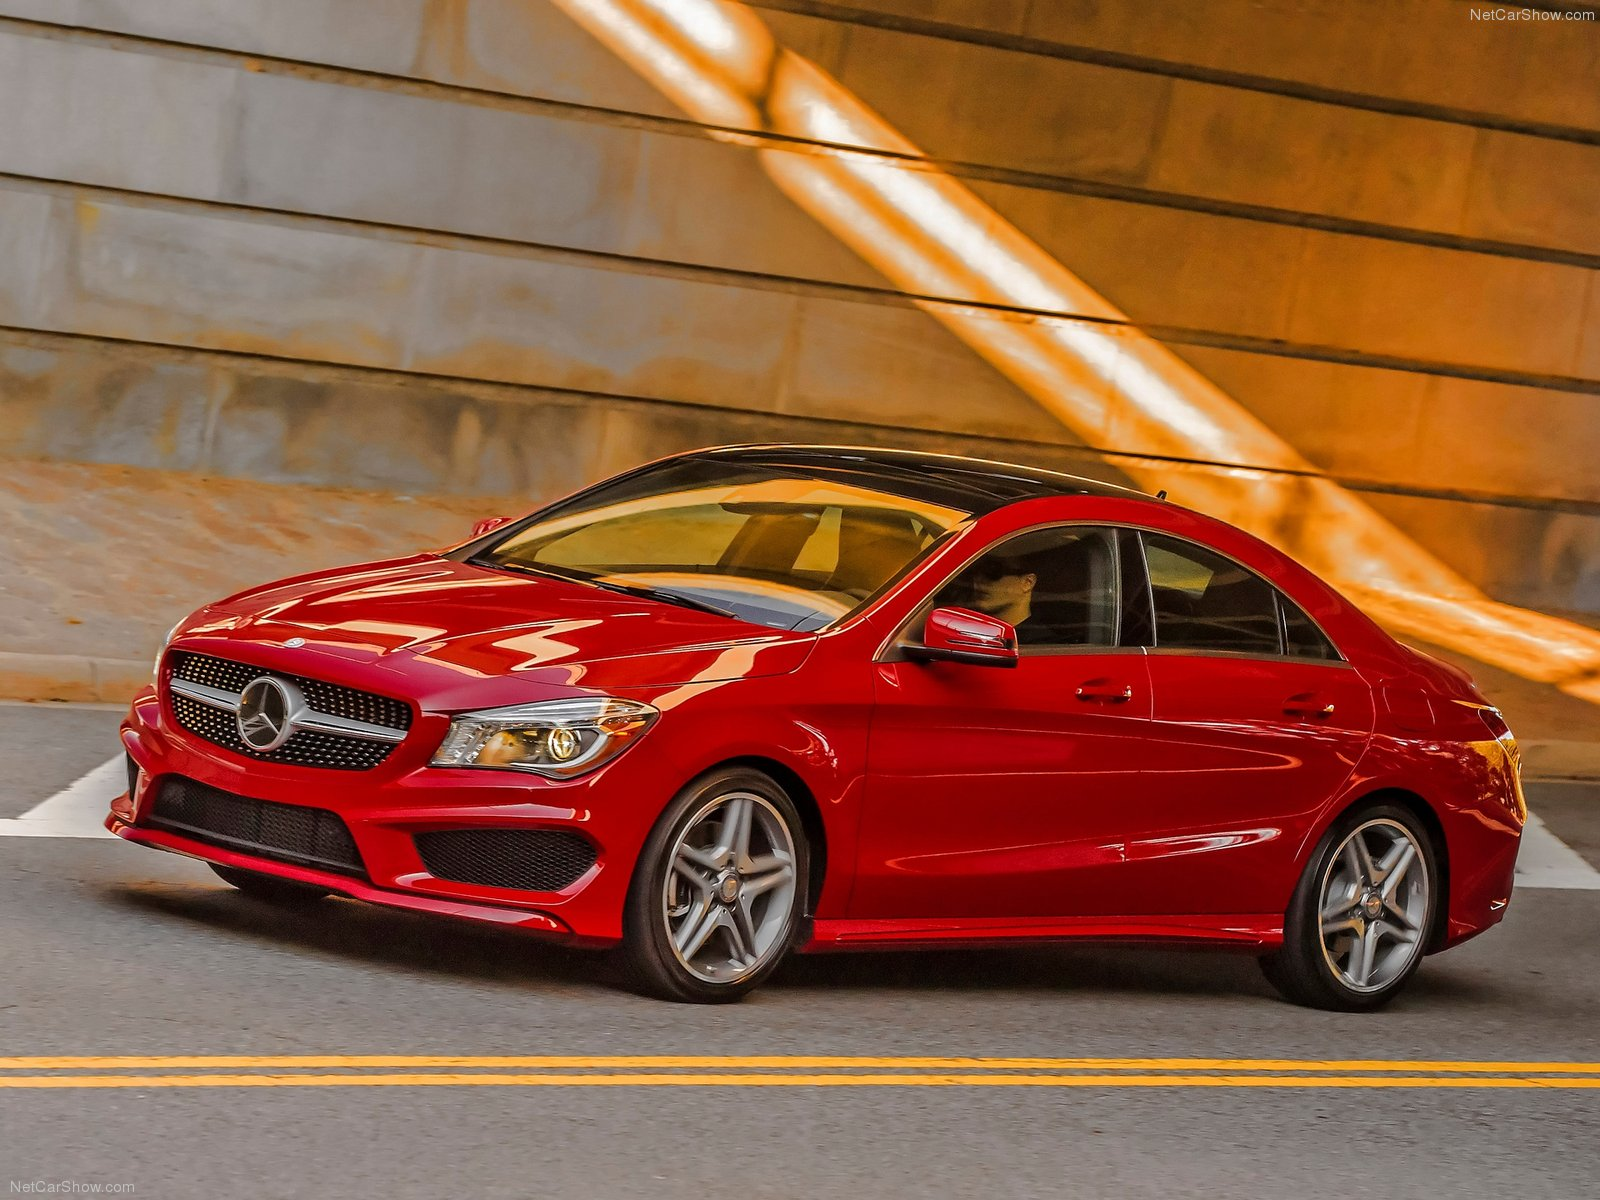 Mercedes benz cla 250 sport picture 115032 mercedes for Mercedes benz 250 cla